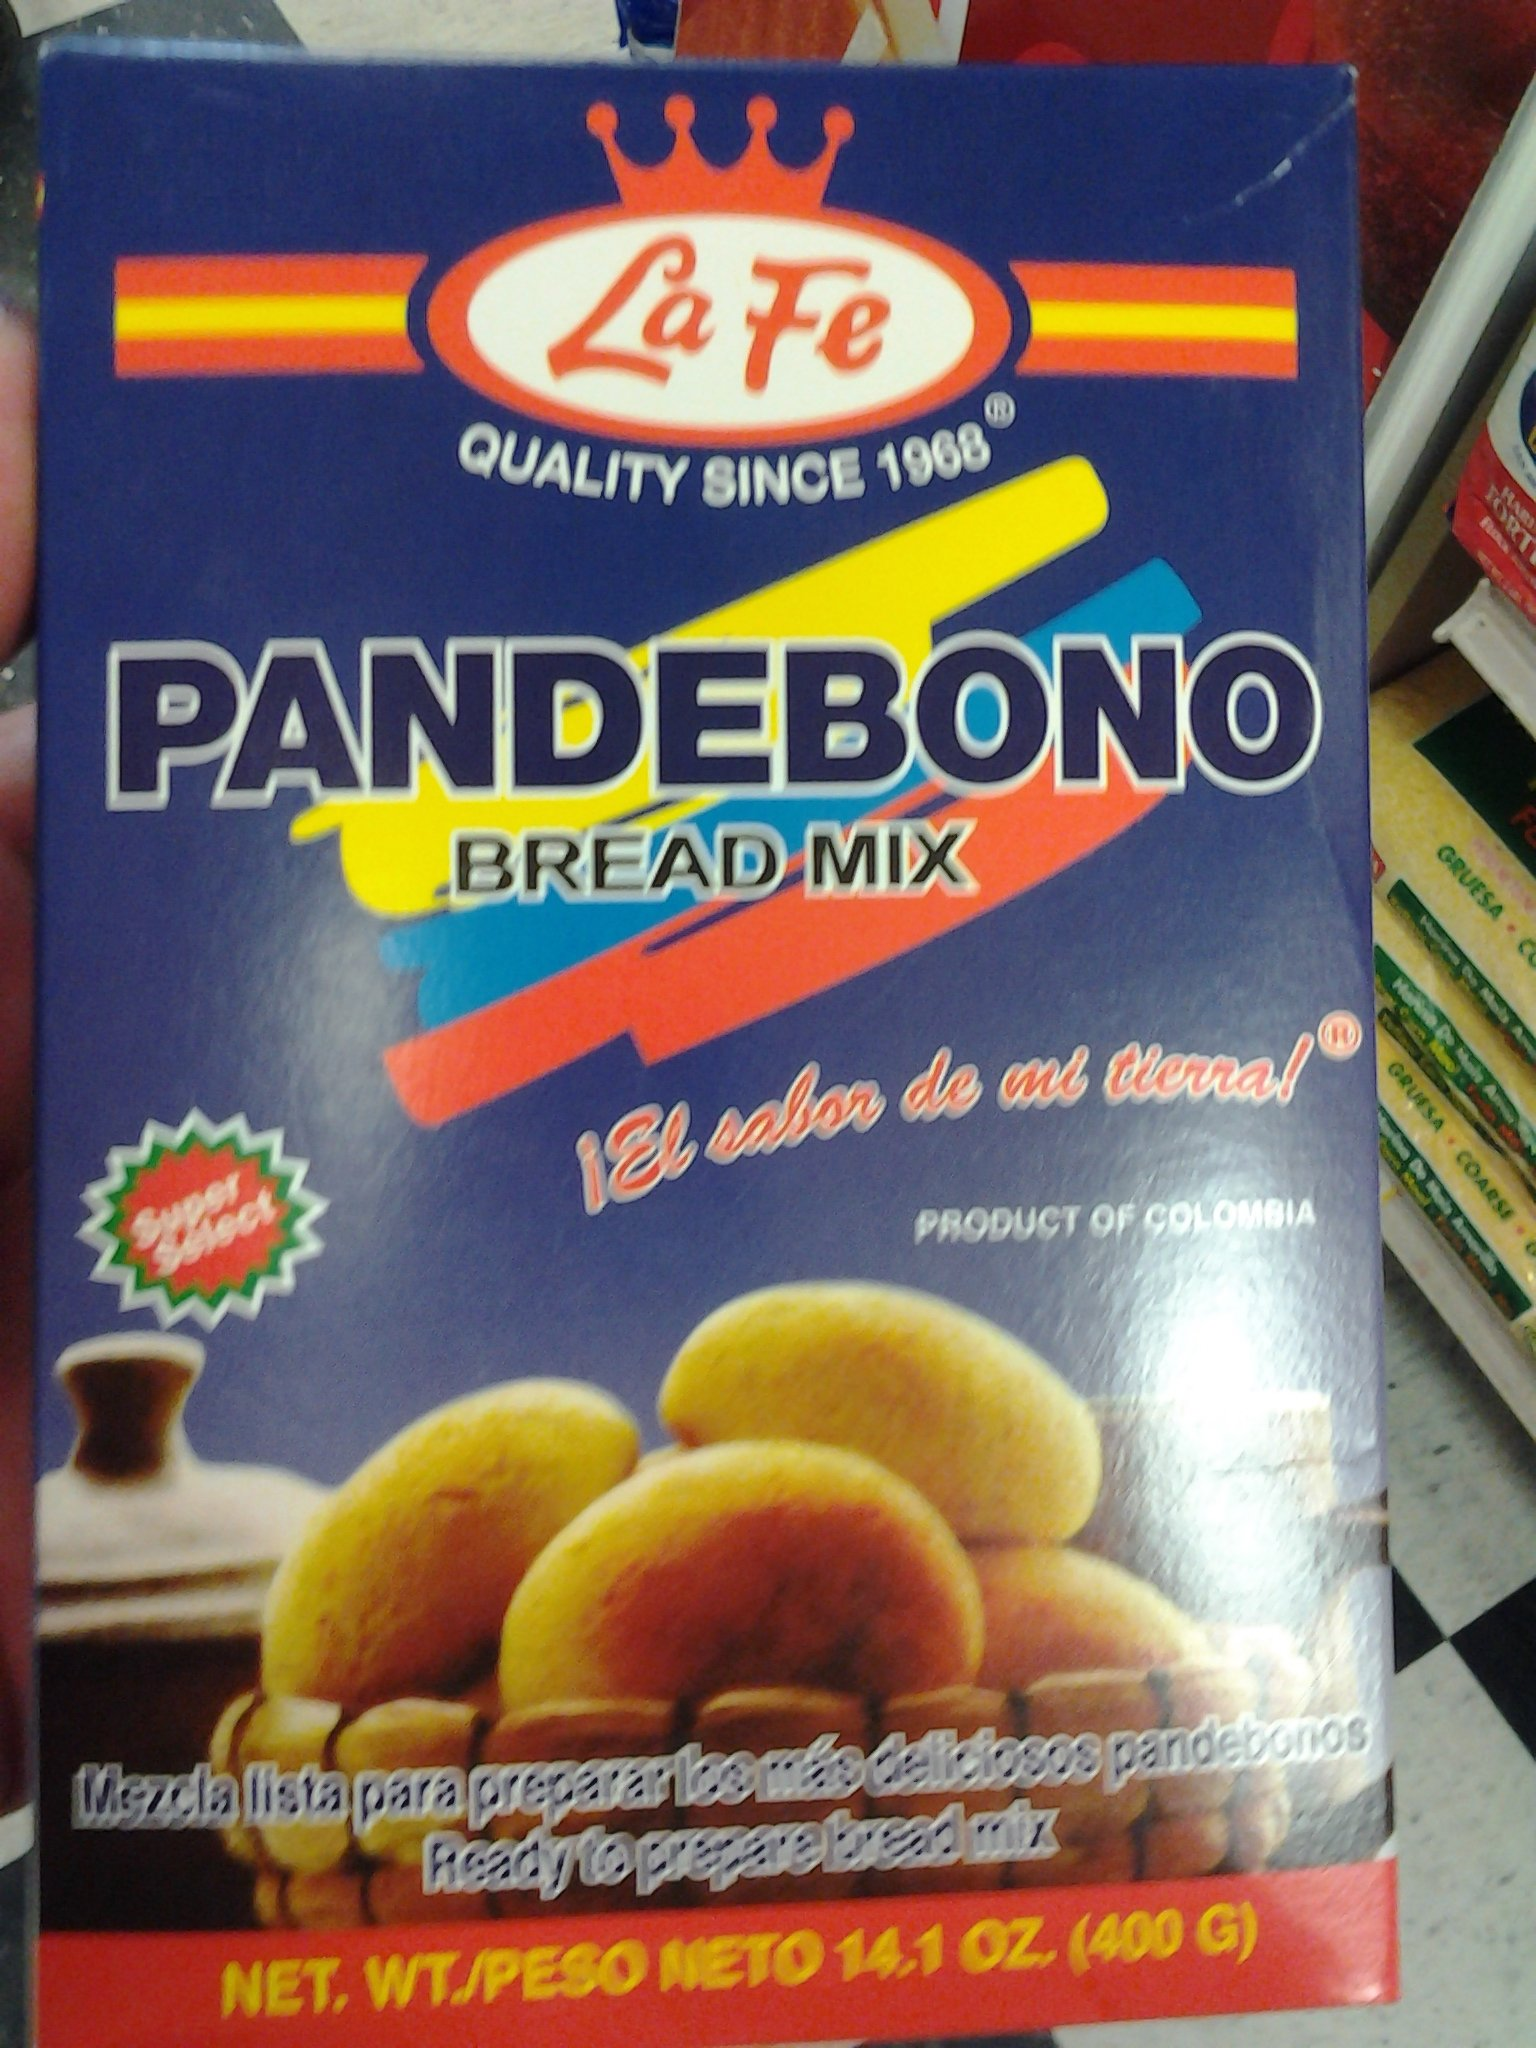 Pan De Bono Colombiano (Typical Colombian Pandebono, 1 Pack) 14.01 Oz